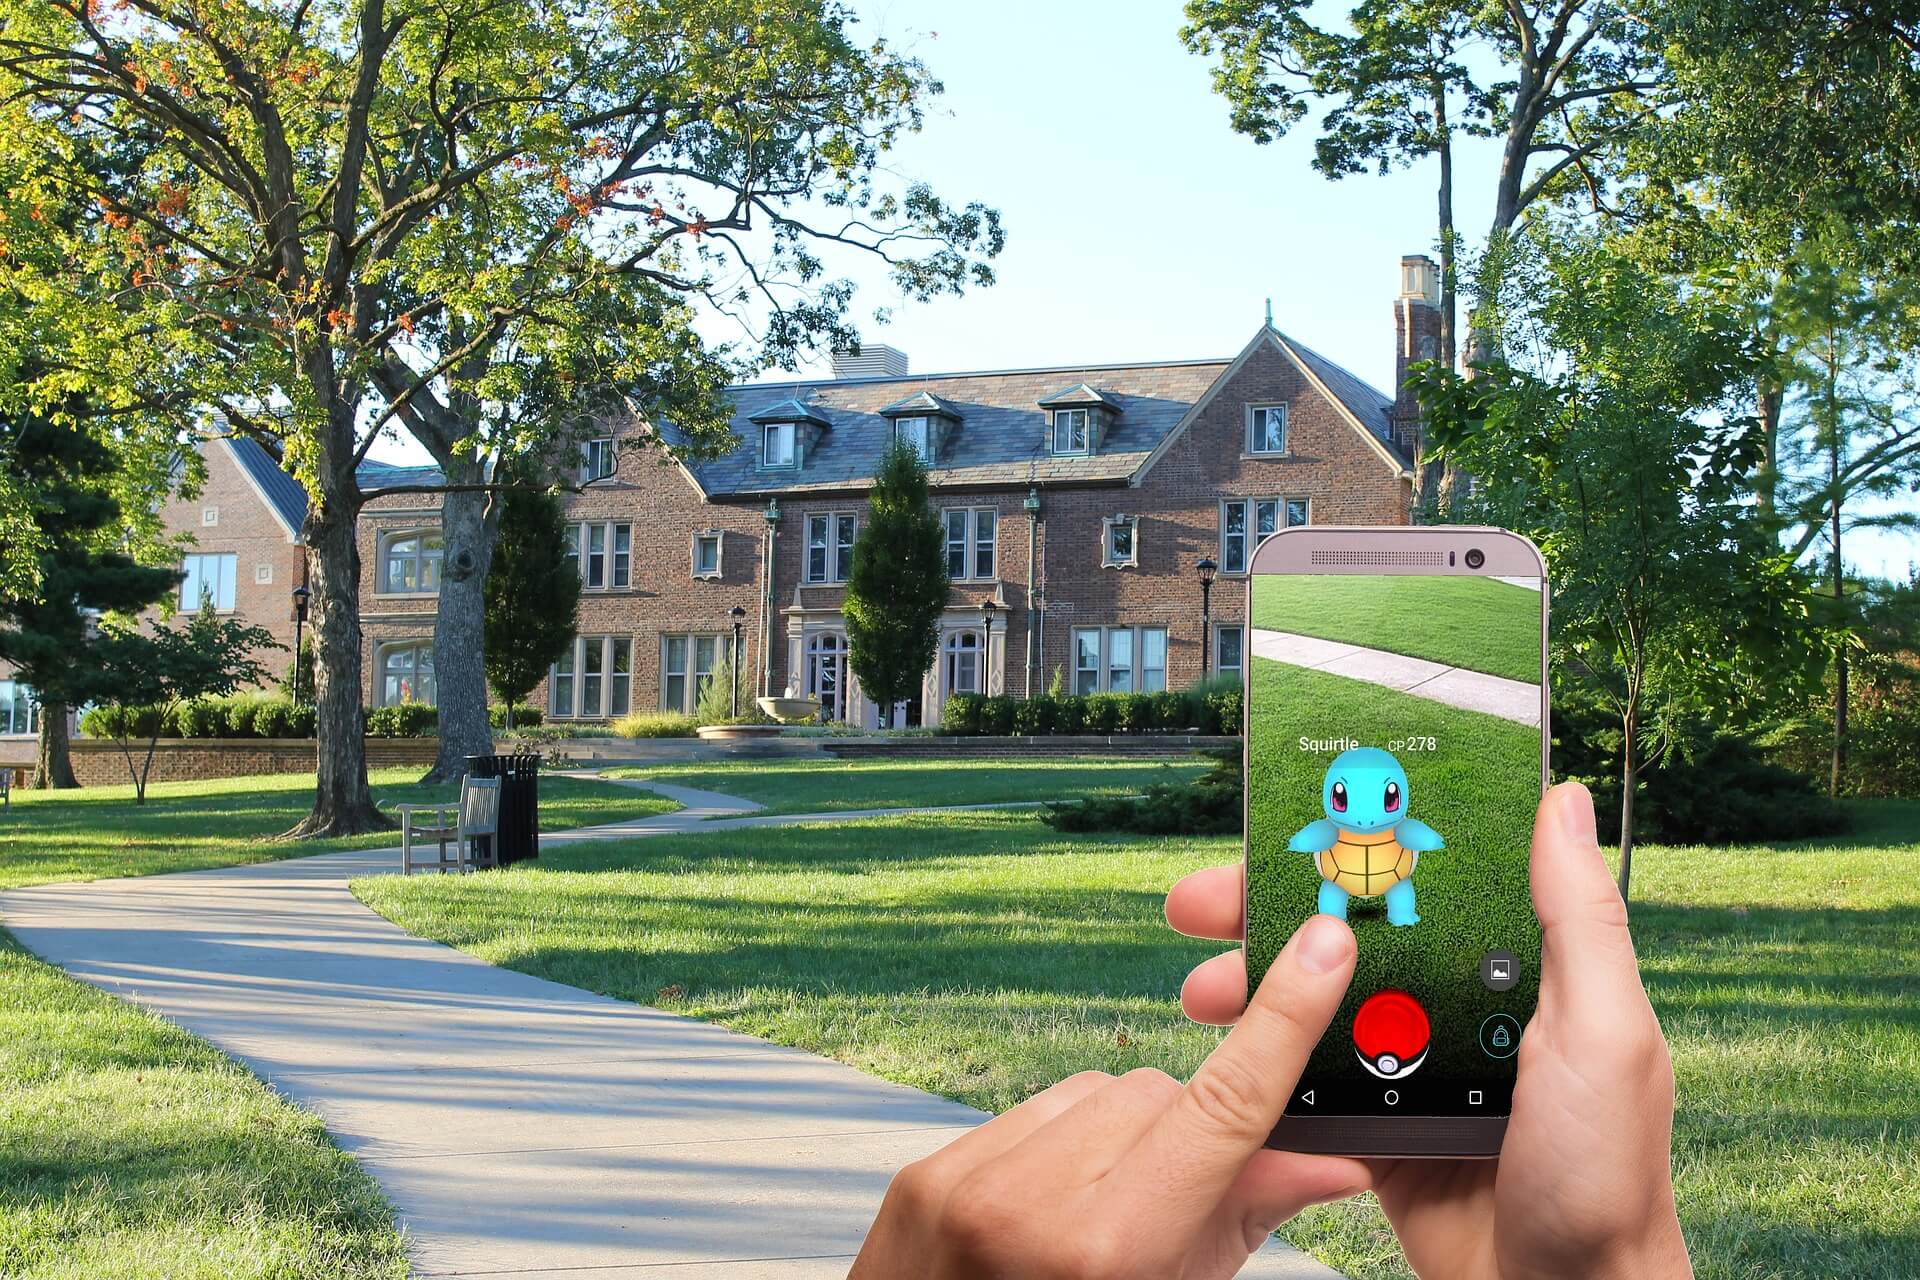 Person playing Pokemon Go on their phone and attempting to capture a Squirtle